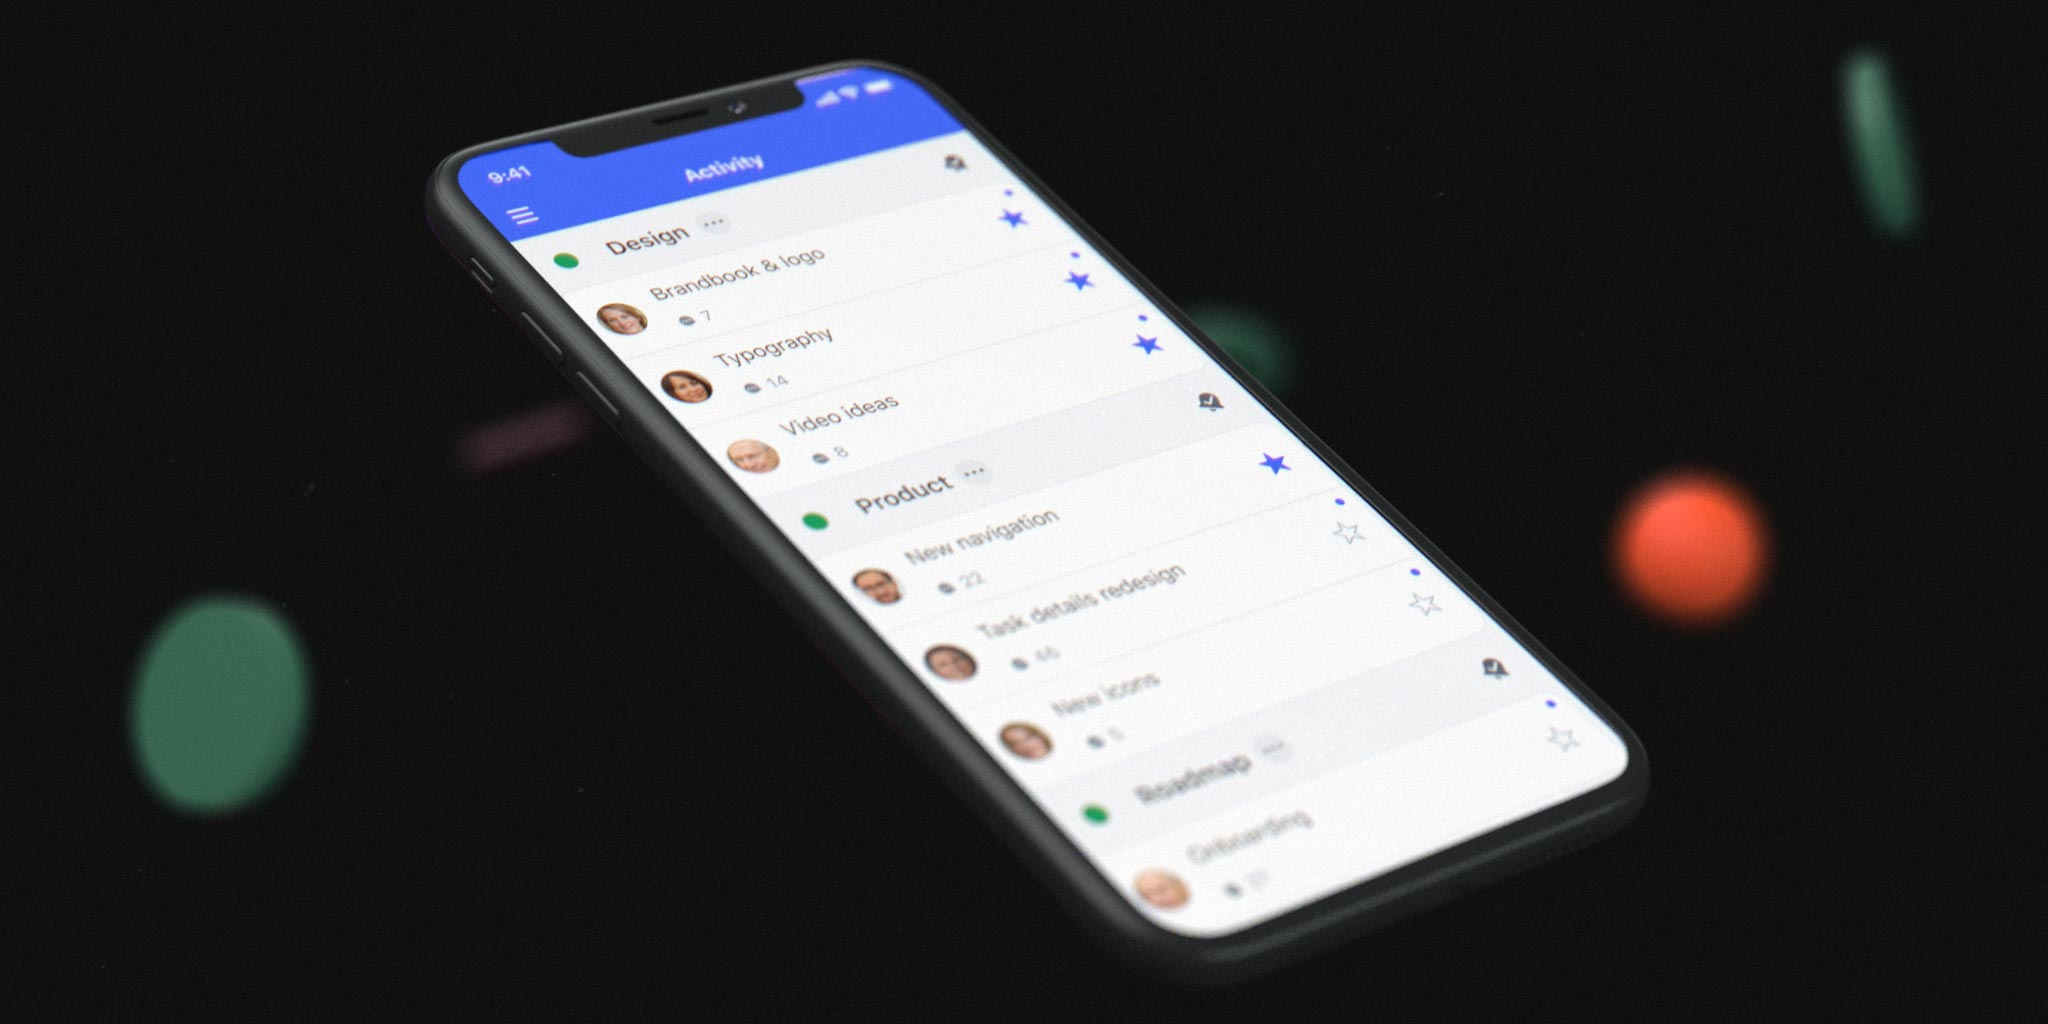 New Nozbe Teams product video and the Product Hunt page of our team collaboration app